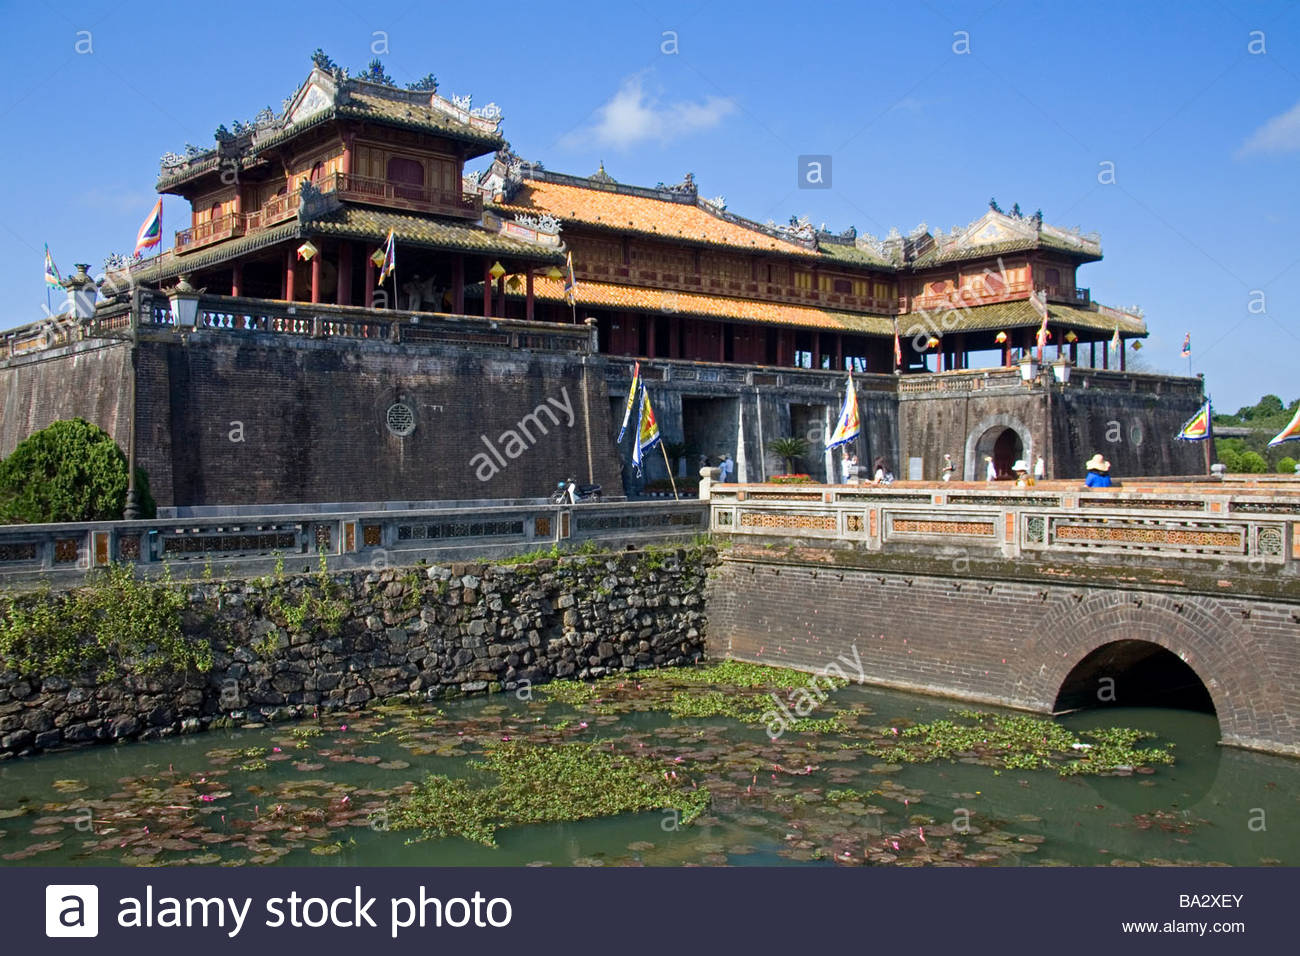 Ngo Mon Gate Hue, The Ngo Mon Gate at the entrance to the Imperial Citadel of Hue ...